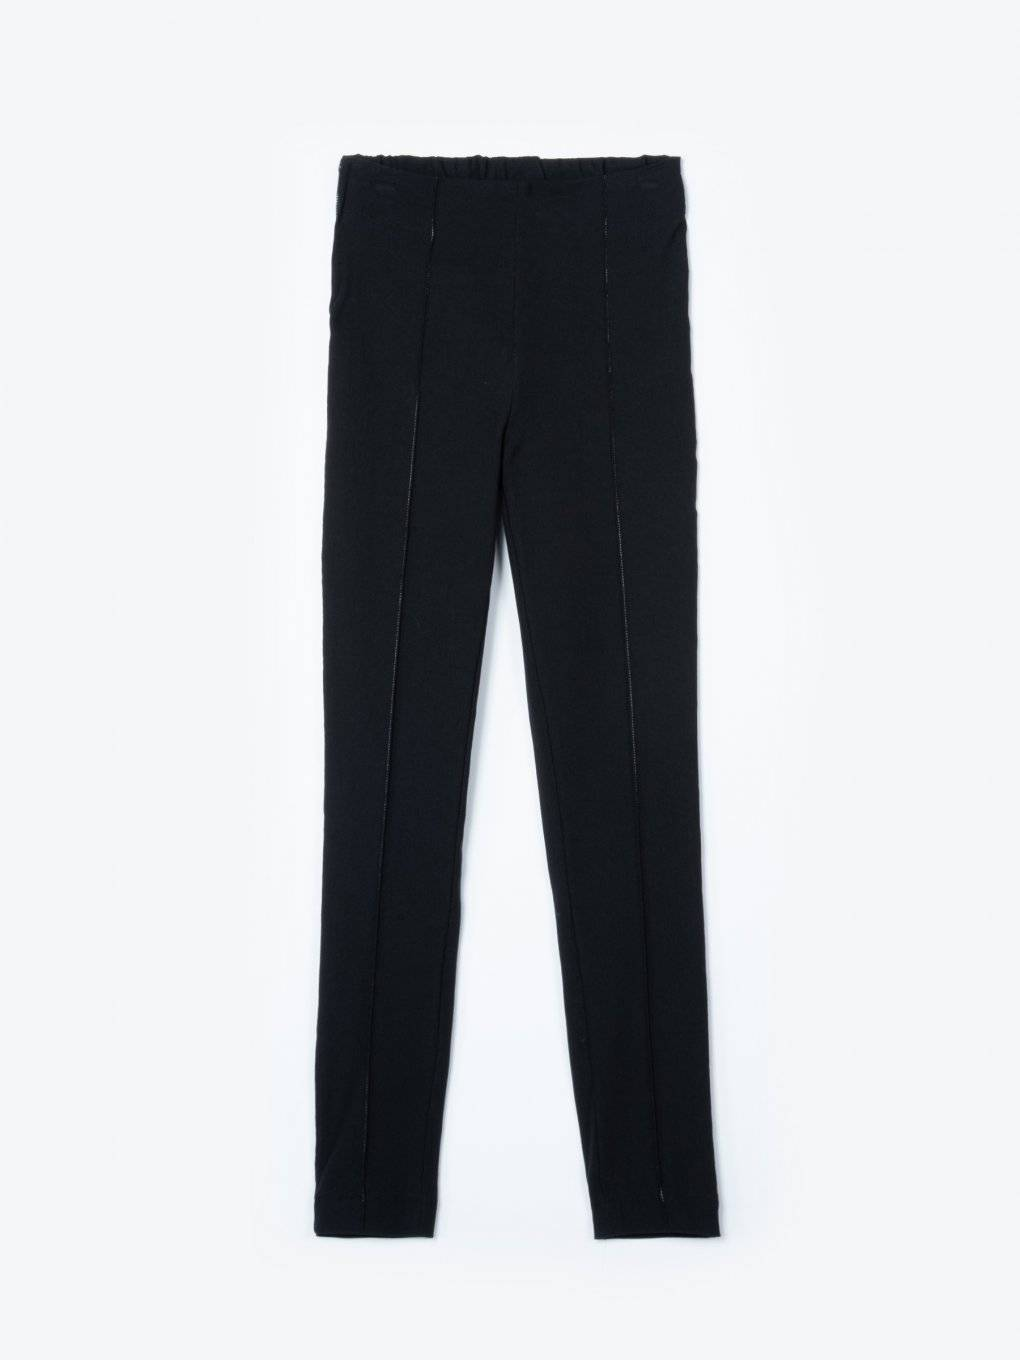 Slim fit elastic pants with contrast stitching